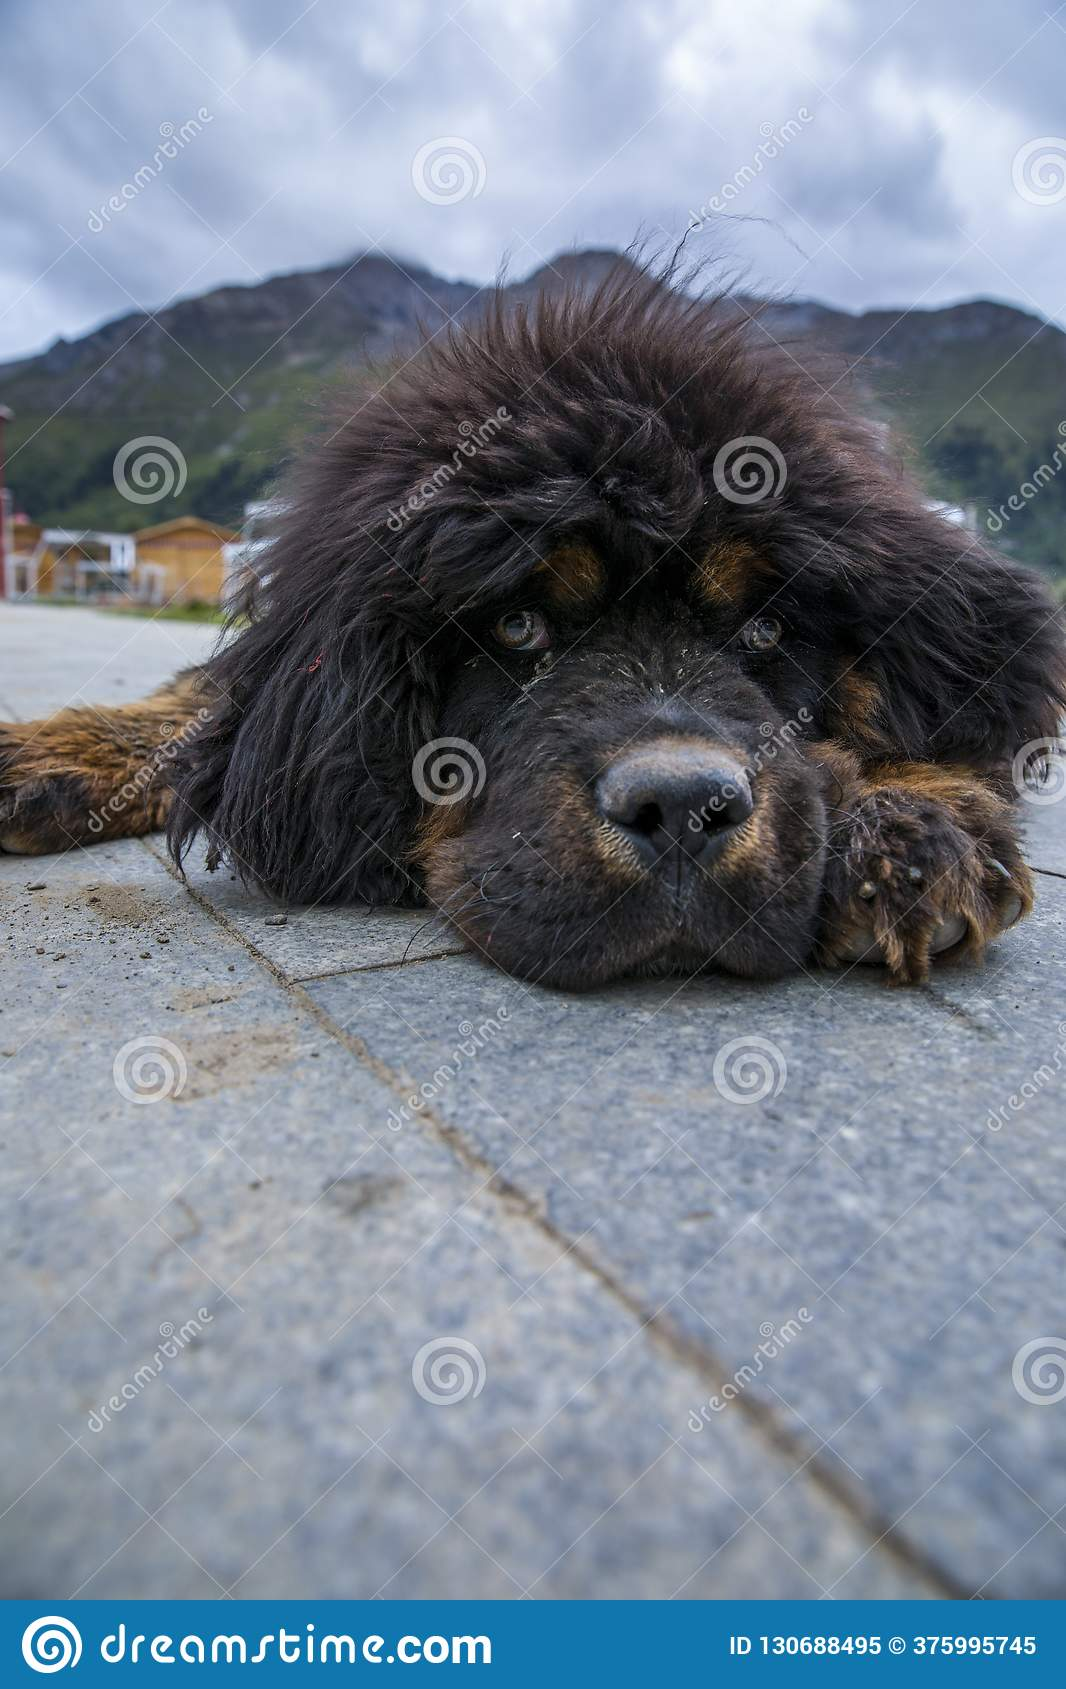 The Tibetan Mastiff Puppies Stock Image - Image of loyal, mastiff